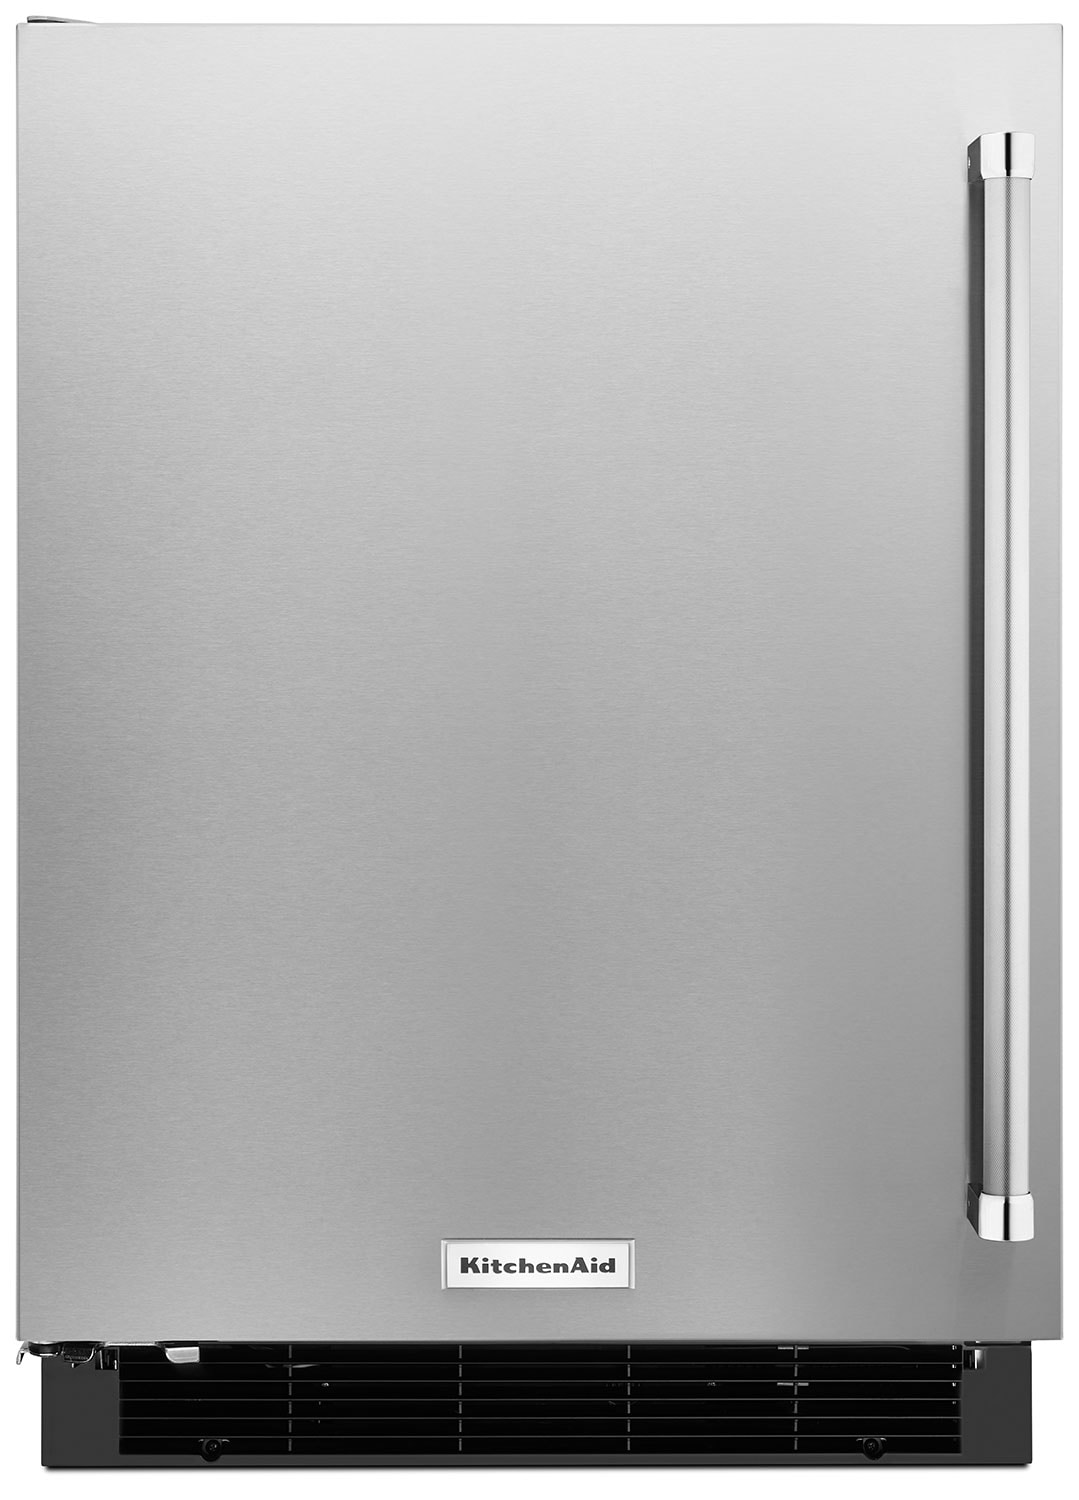 Refrigerators and Freezers - KitchenAid Undercounter Refrigerator KURL104ESB